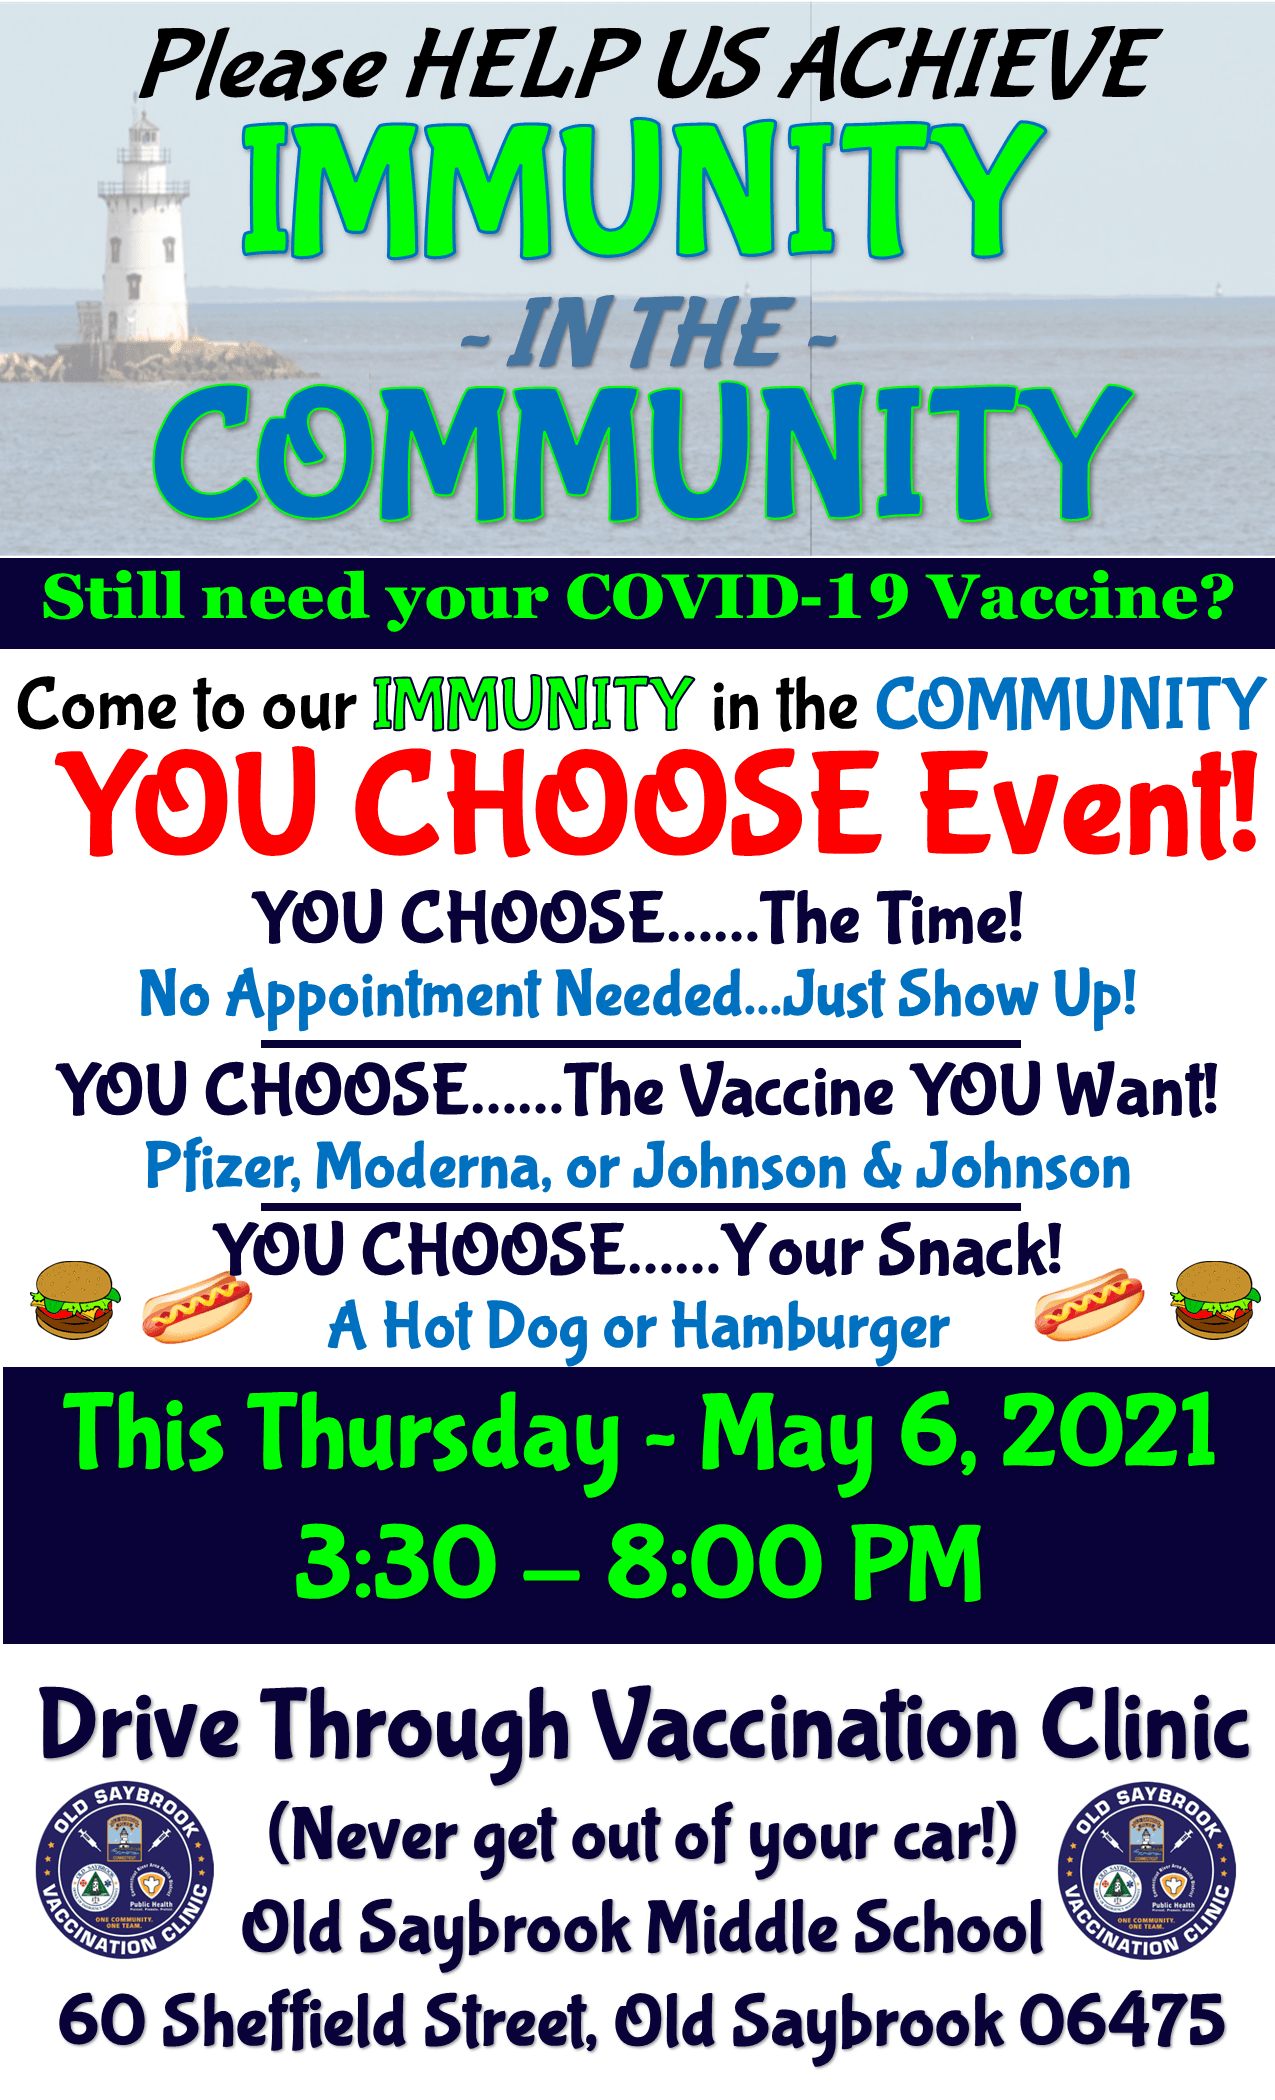 Immunity in the Community - You Choose EVENT